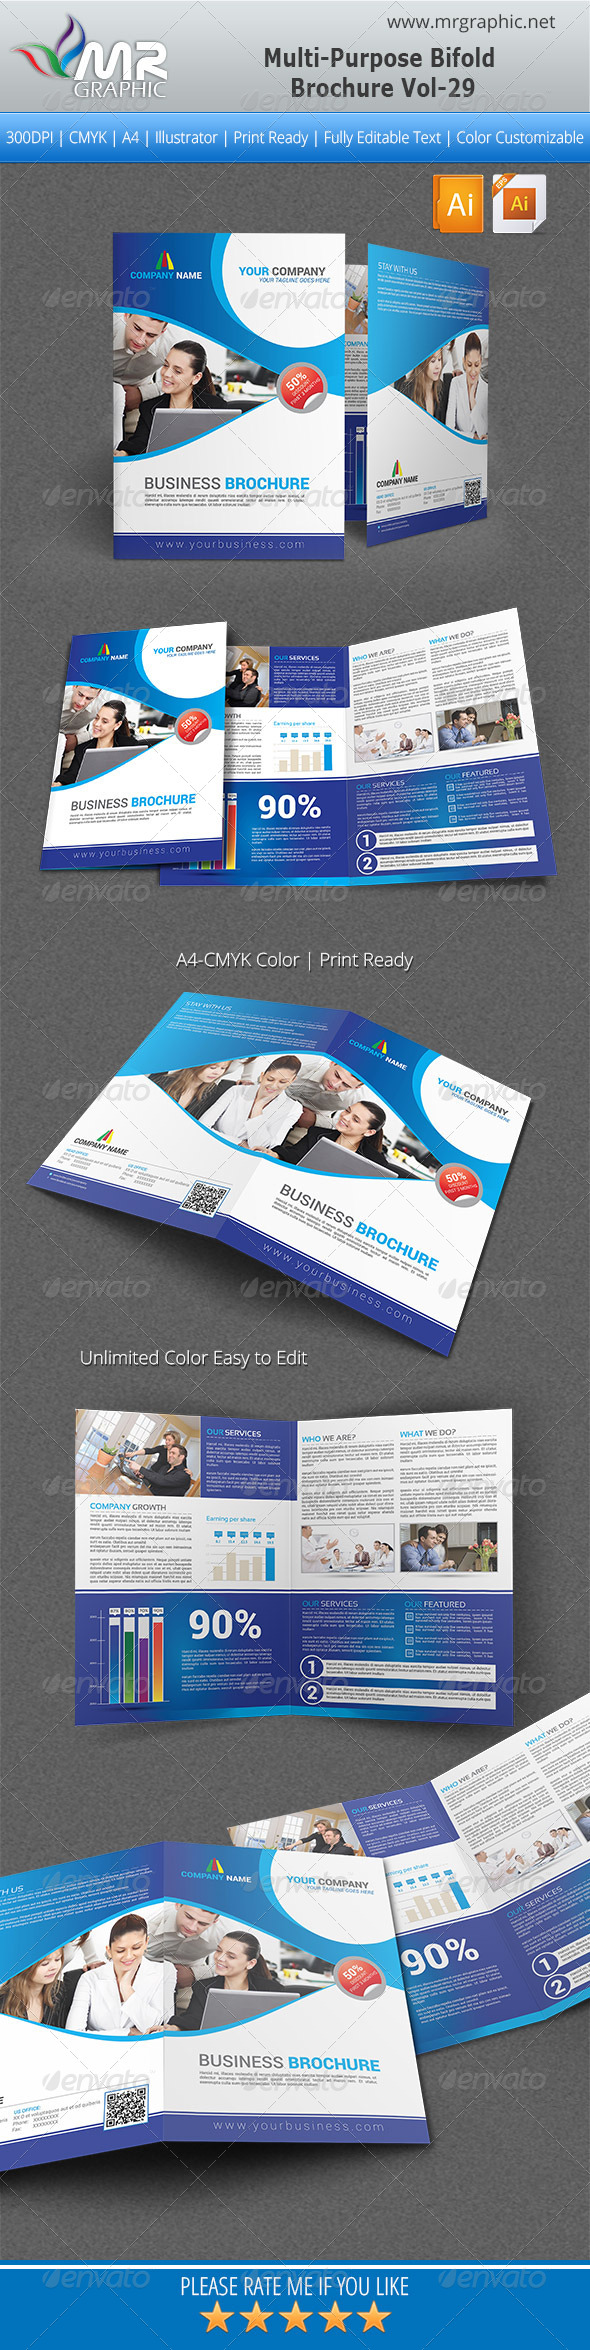 GraphicRiver Multipurpose Bifold Brochure Template Vol-29 5450571